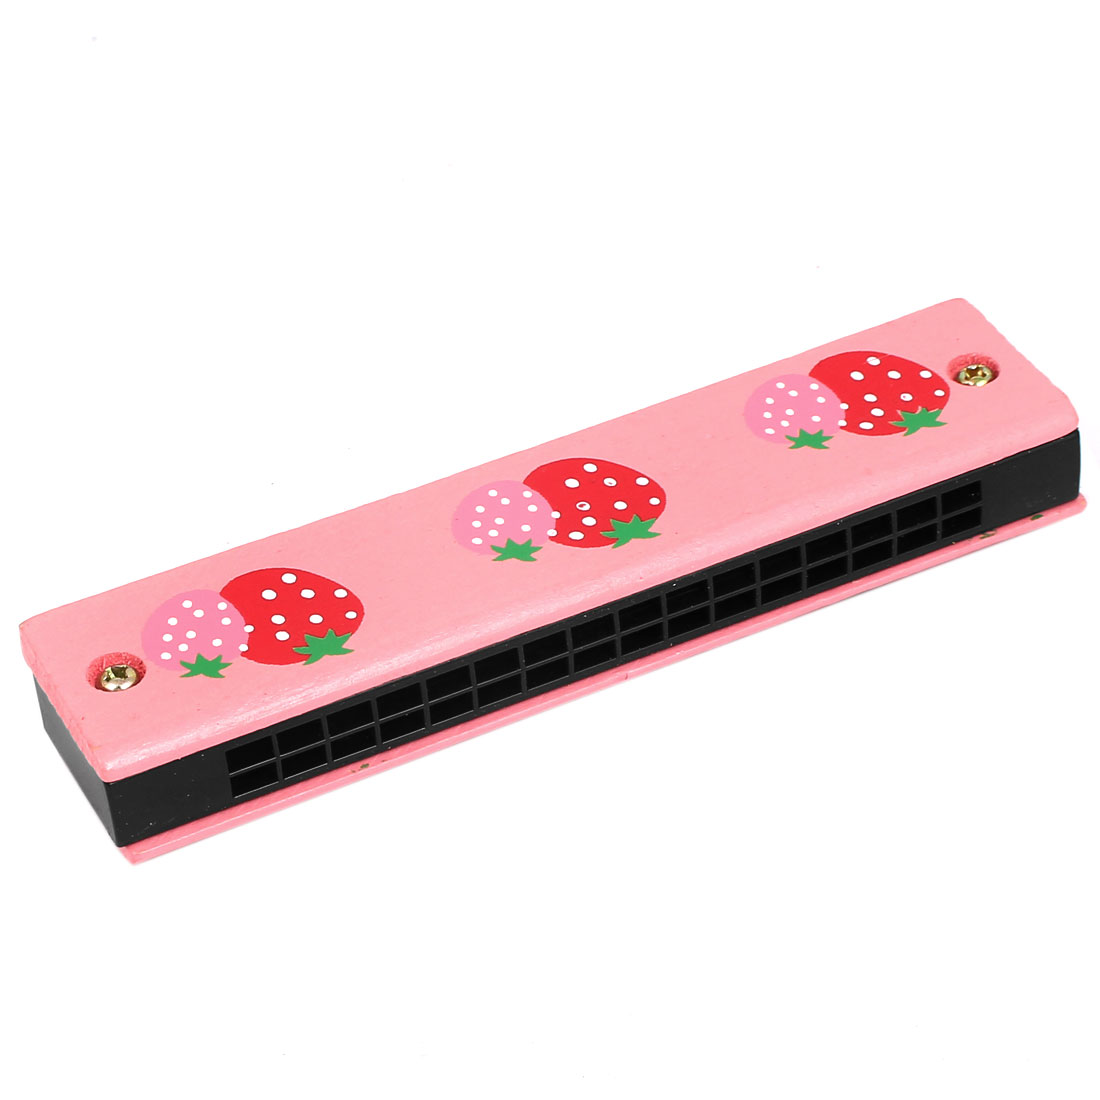 Wood Strawberry Pattern Double Rows 32 Holes Harmonica Mouth Organ Pink